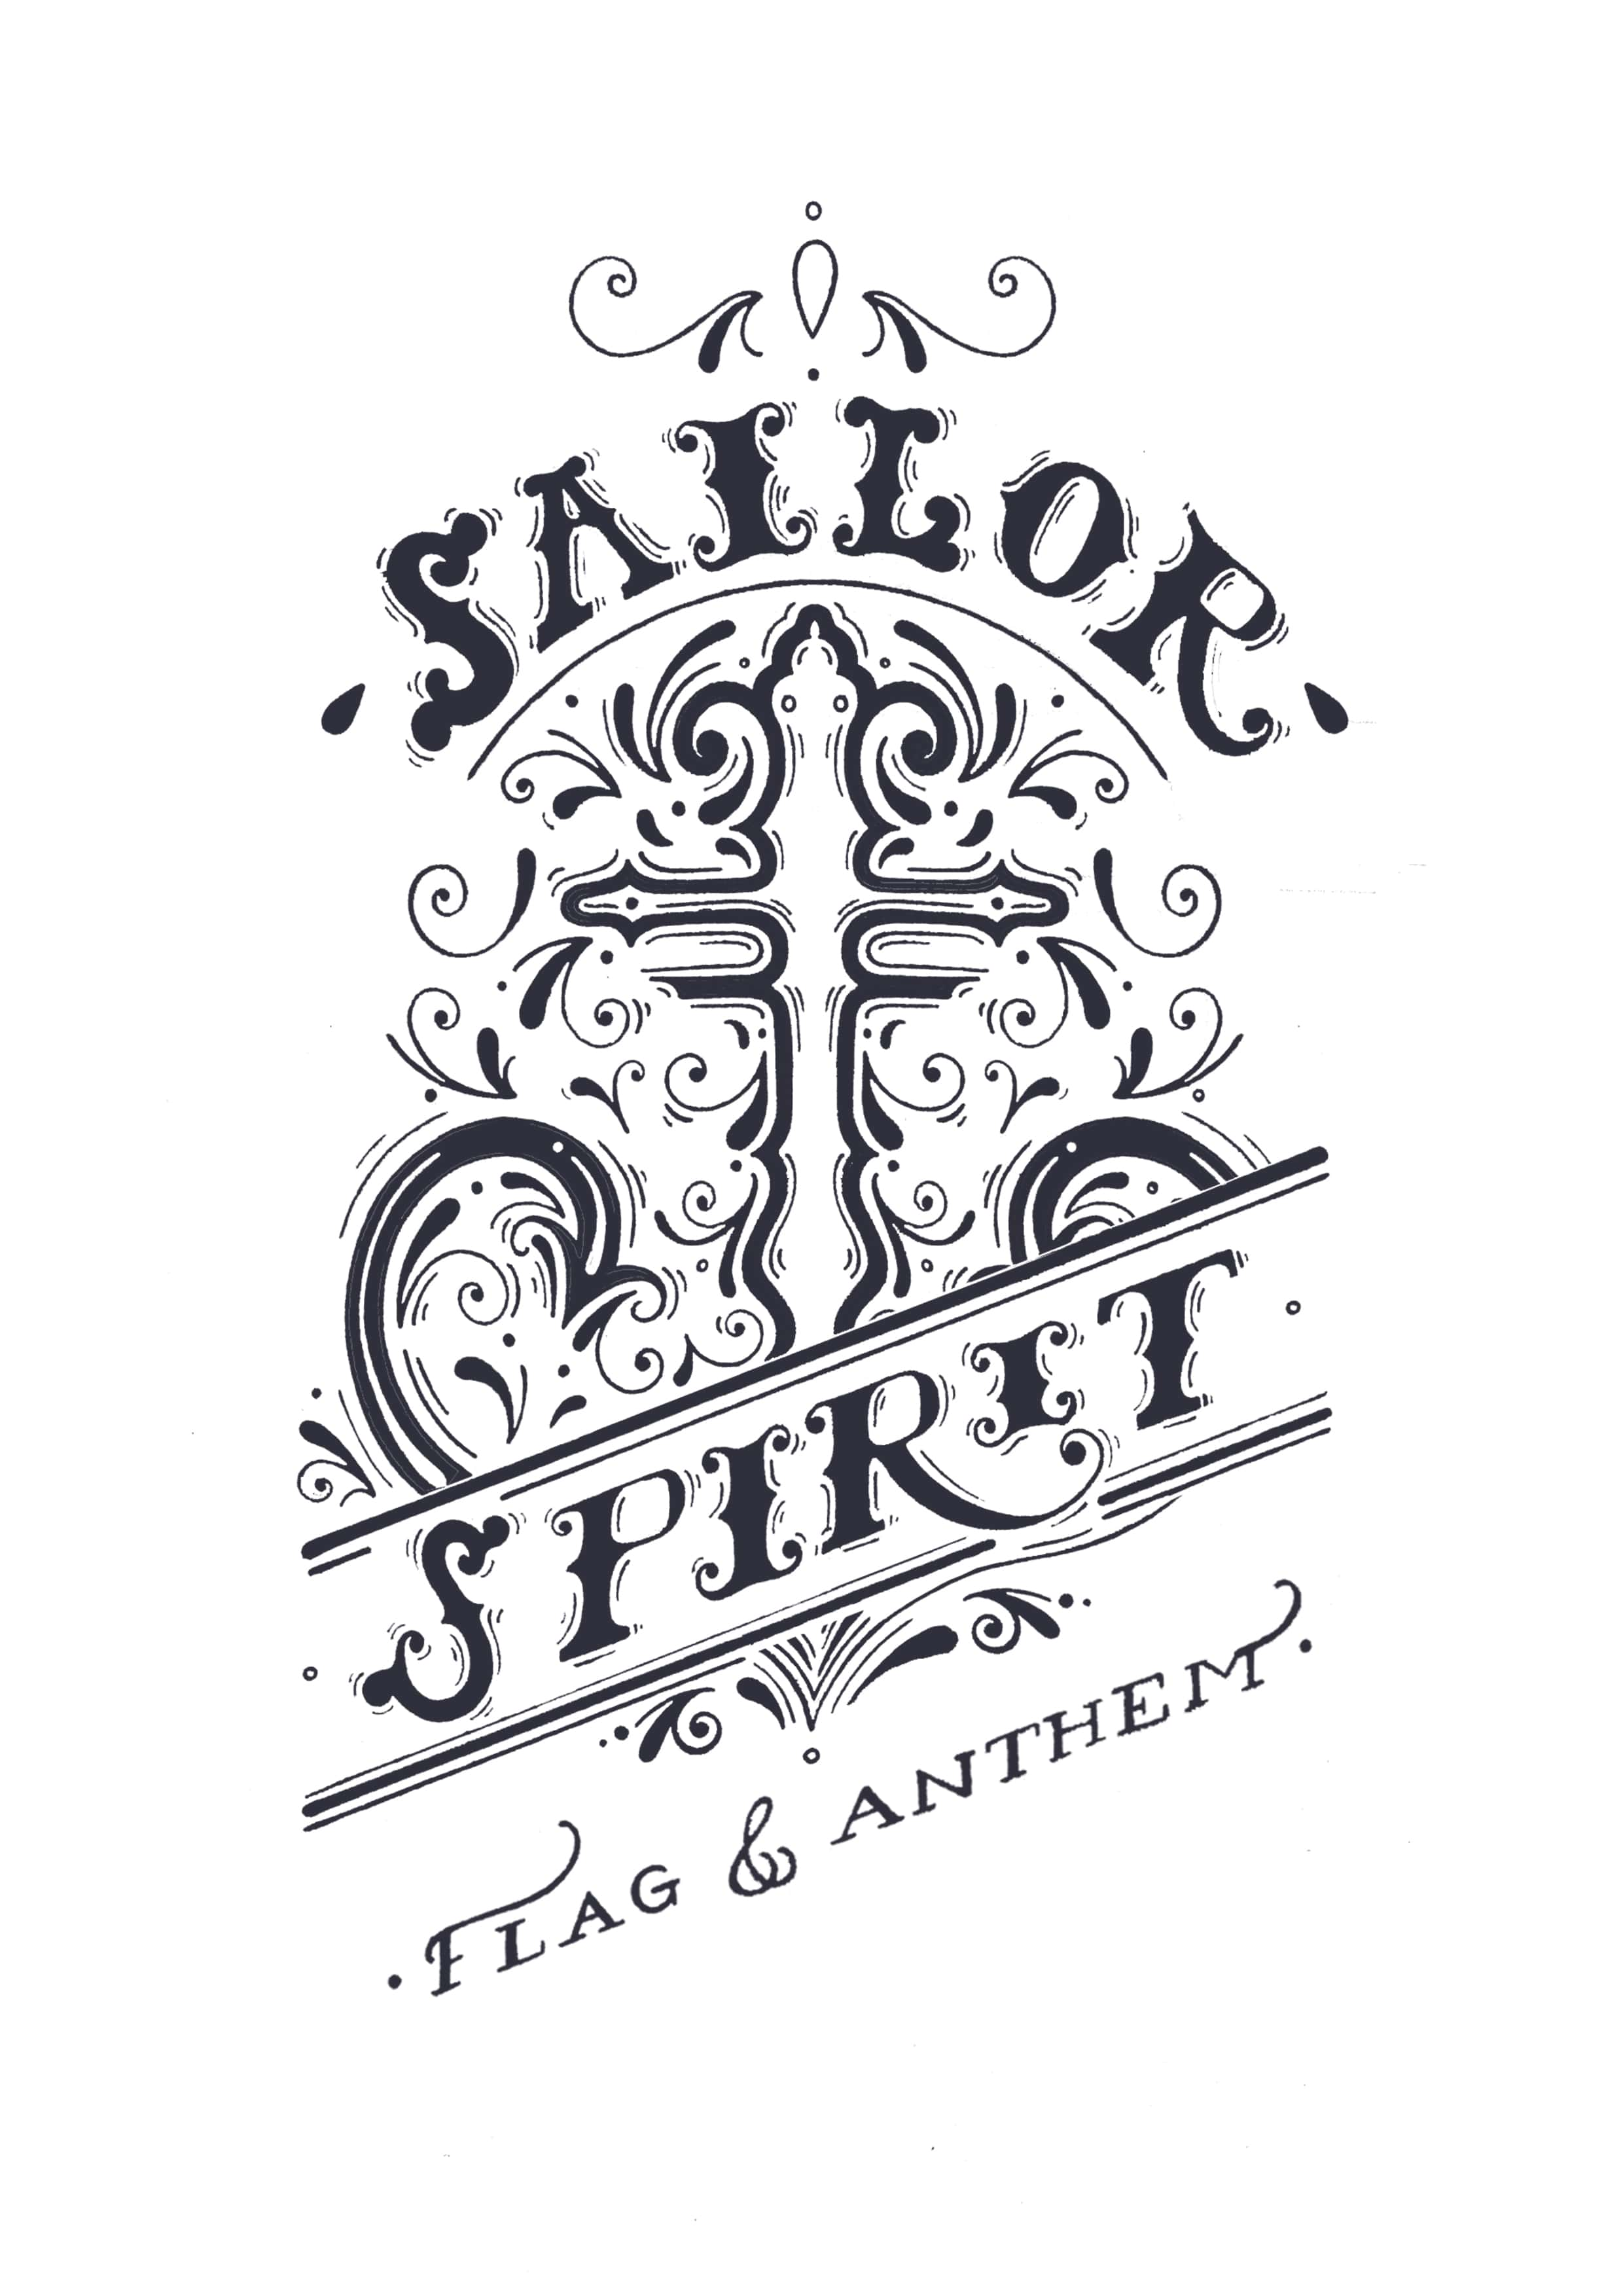 Sailor Spirit - Nautical Typographic Clothing design for Flag & Anthem Clothing, 2016.